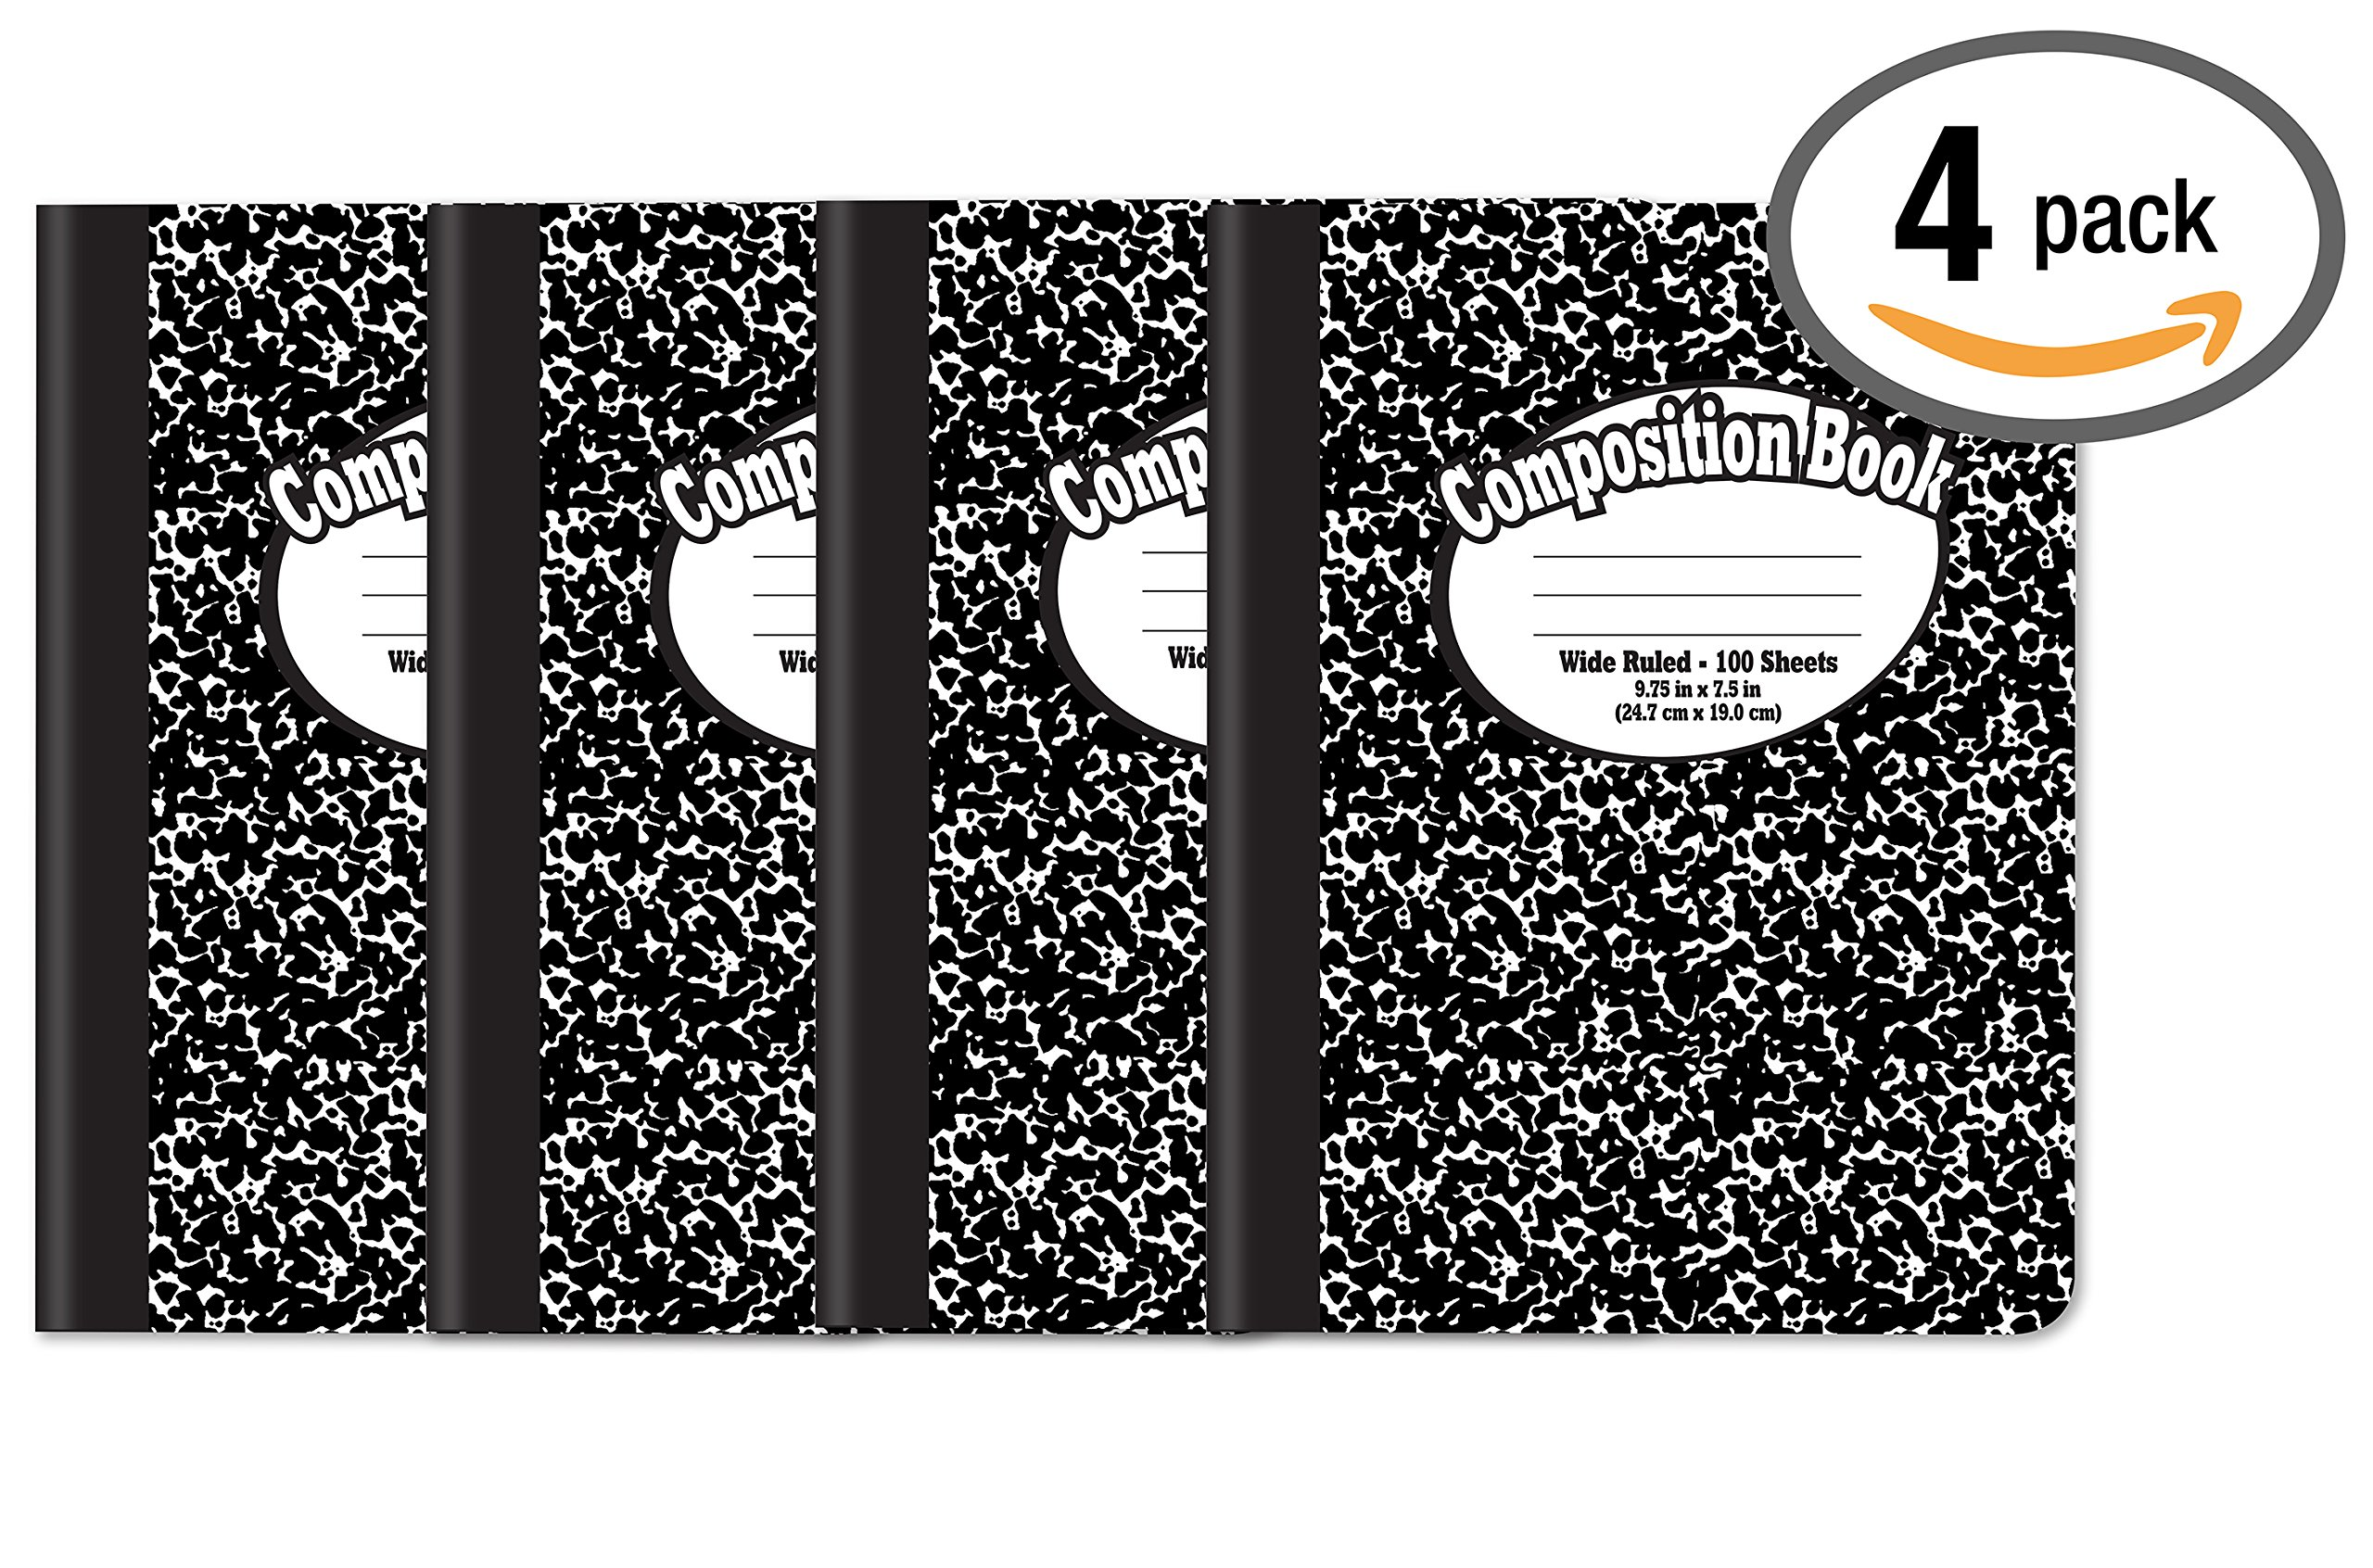 Composition Book Notebook - Hardcover, Wide Ruled (11/32-inch), 100 Sheet, One Subject, 9.75'' x 7.5'', Black Cover-4 Pack